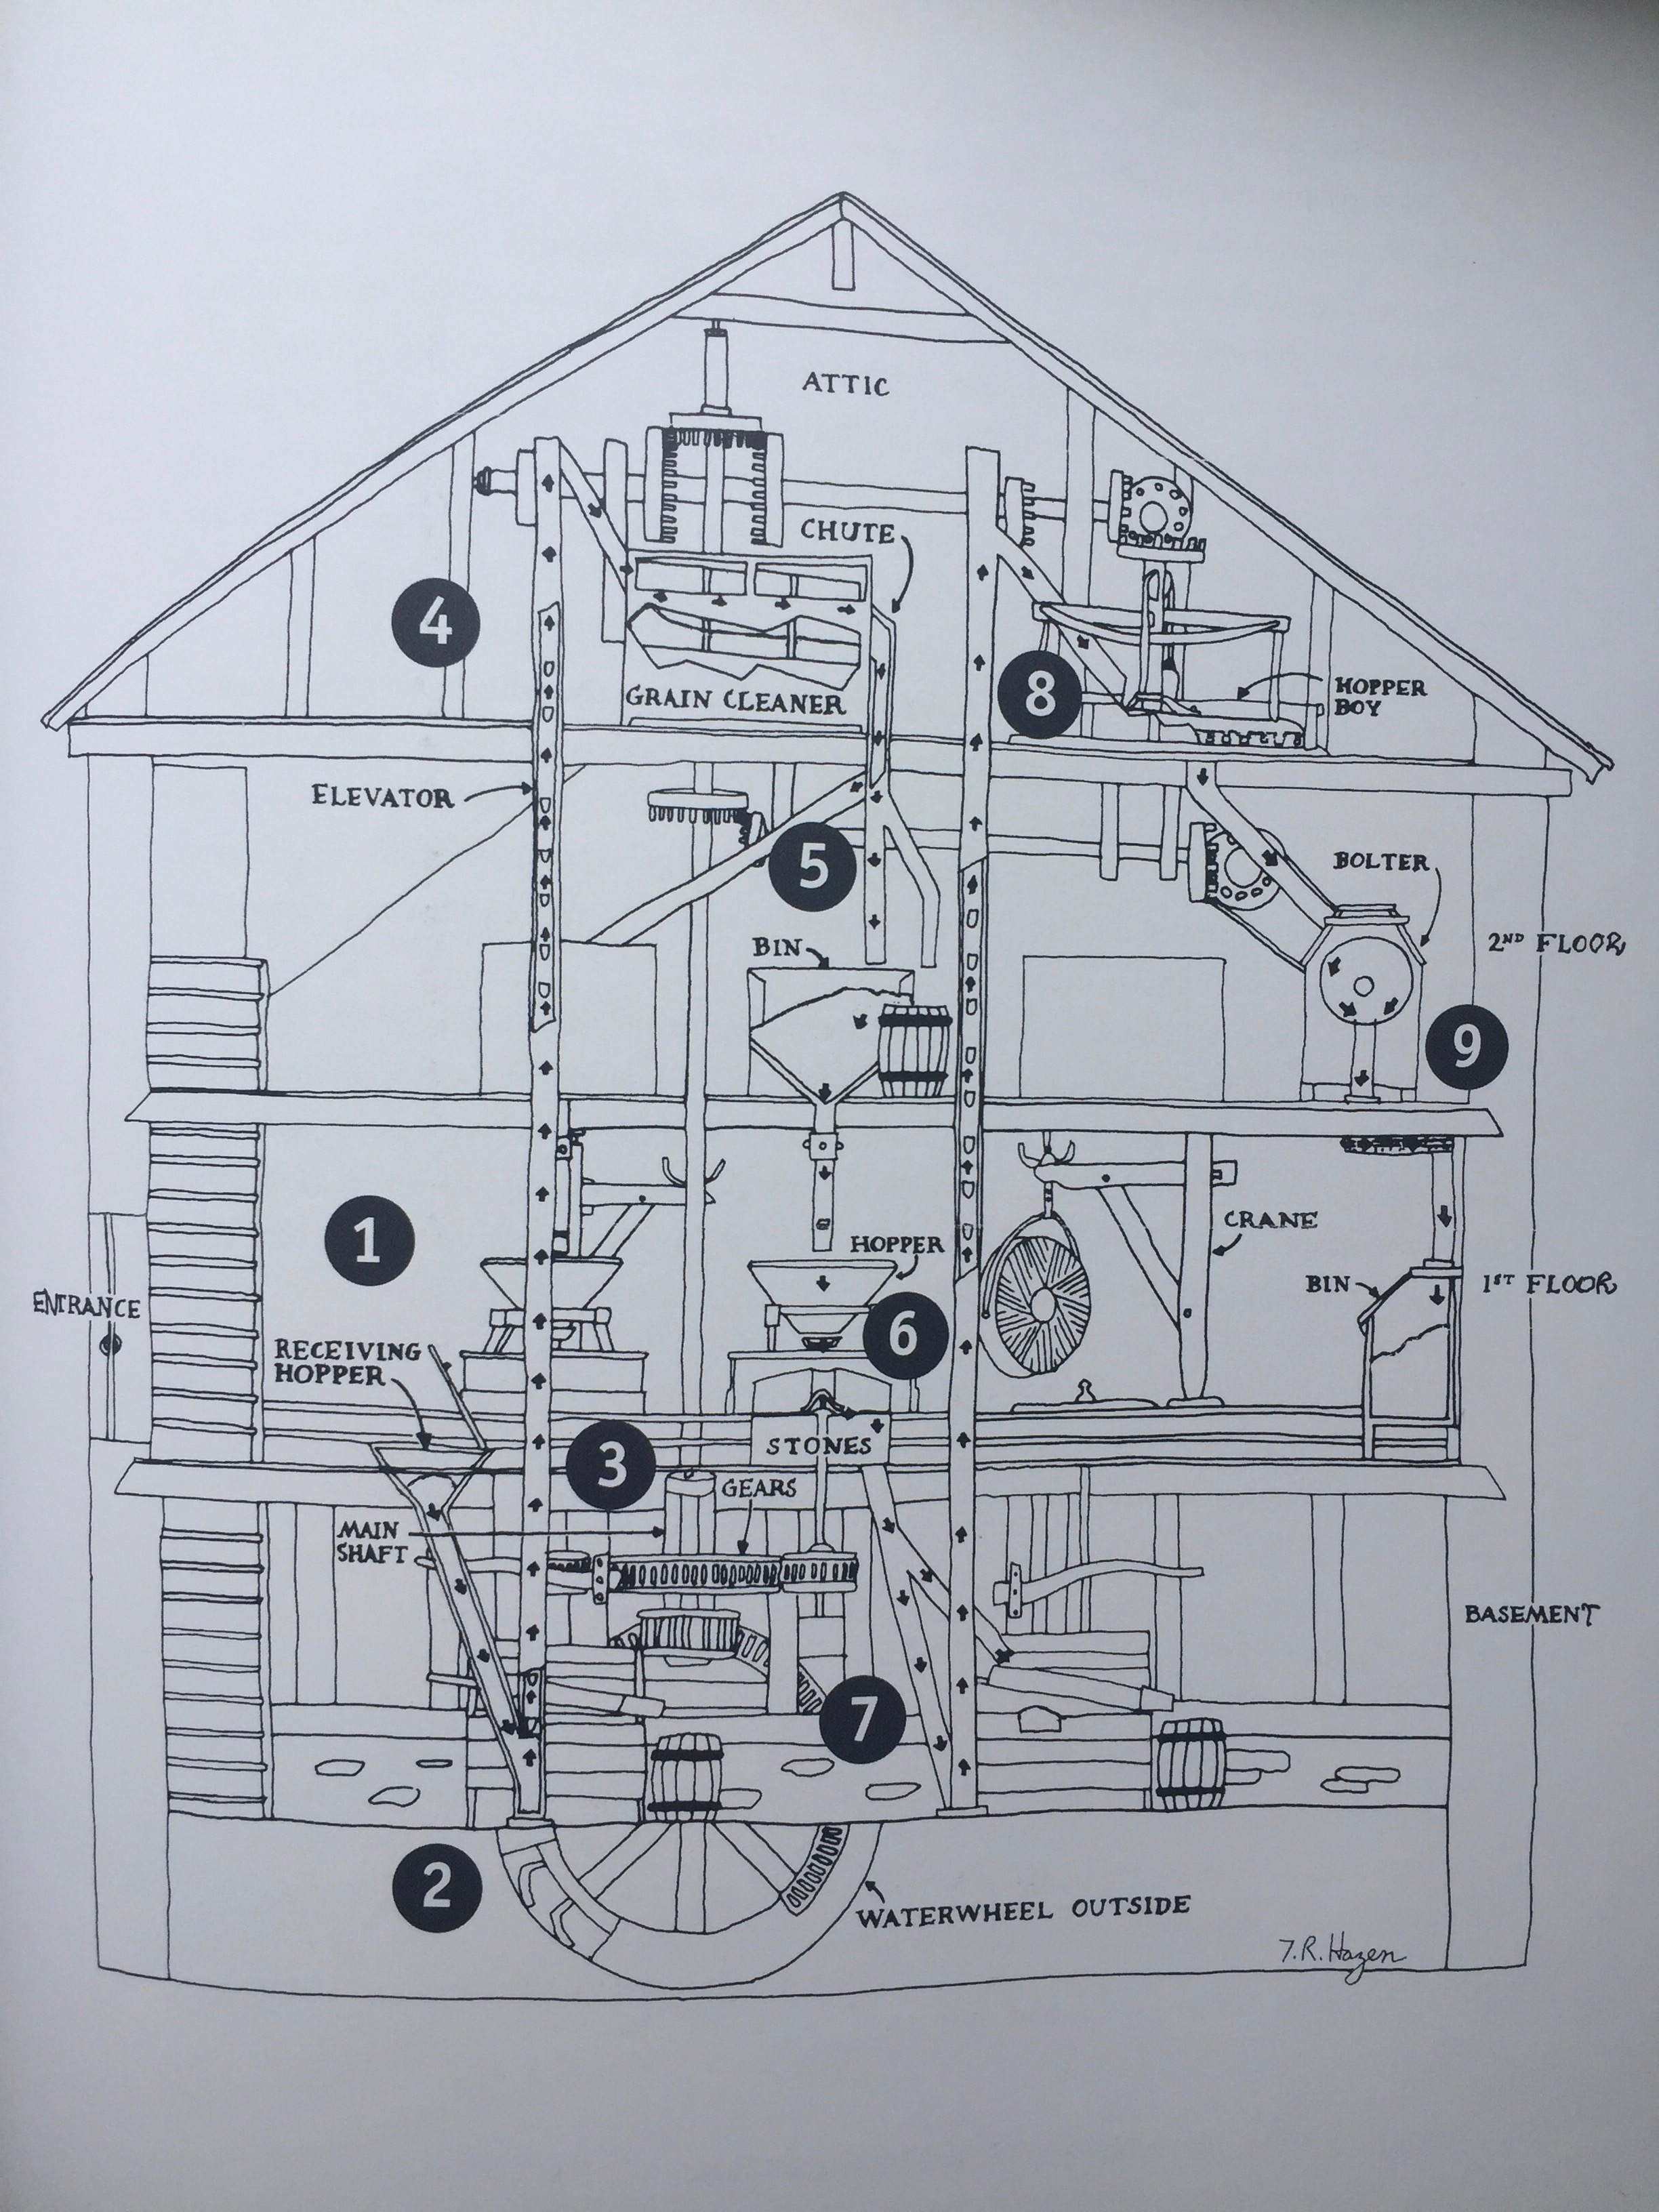 Map of Peirce Mill, from Steve's book